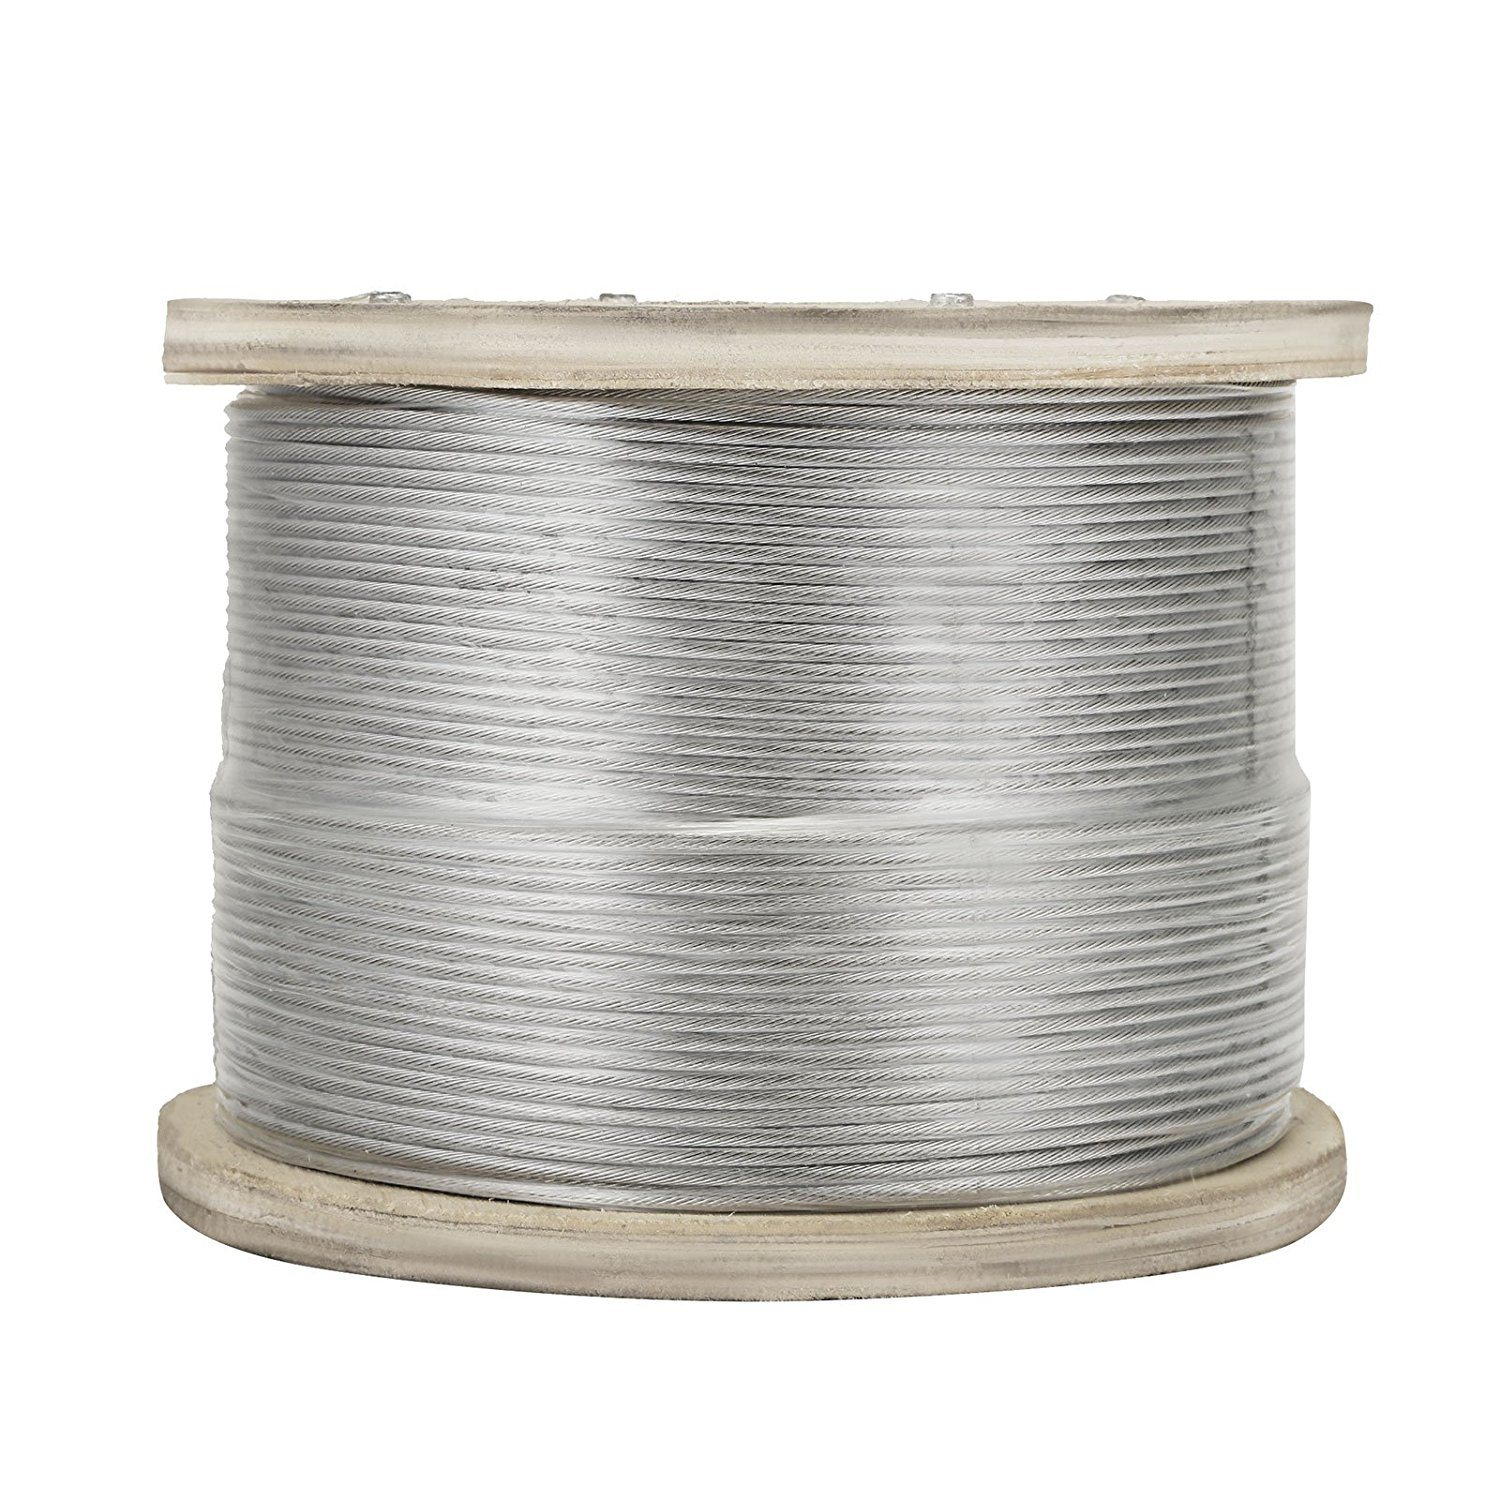 China Nylon Coated Rope 316 Stainless Steel Wire Rope 7X7 Diameter ...